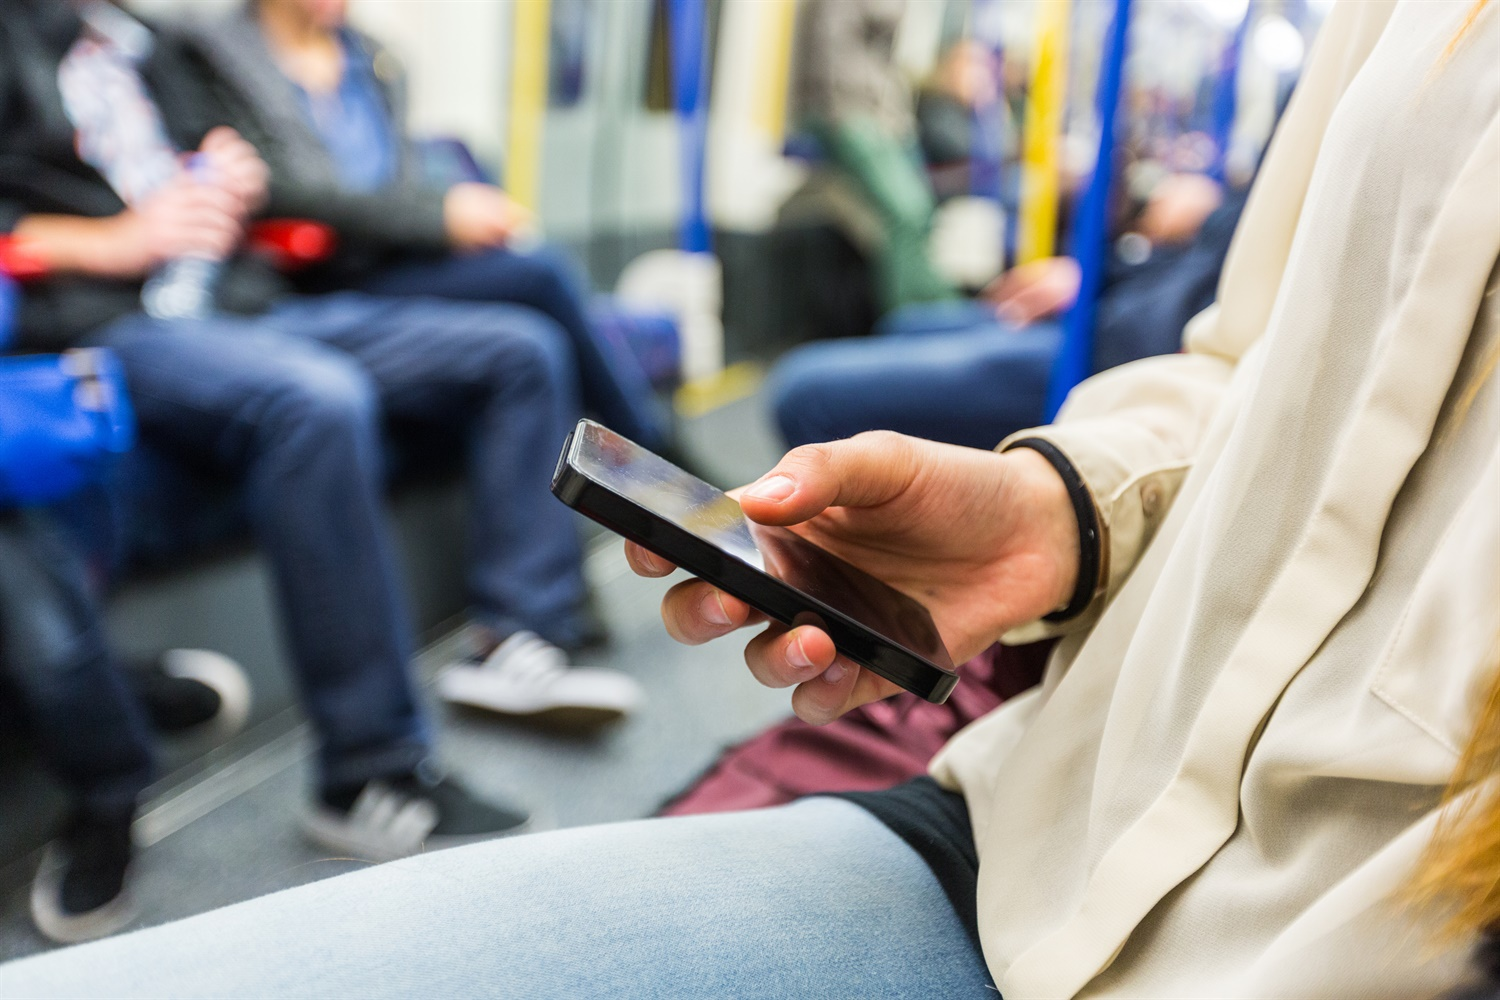 TfL seeking permanent customer wi-fi data collection on the Tube